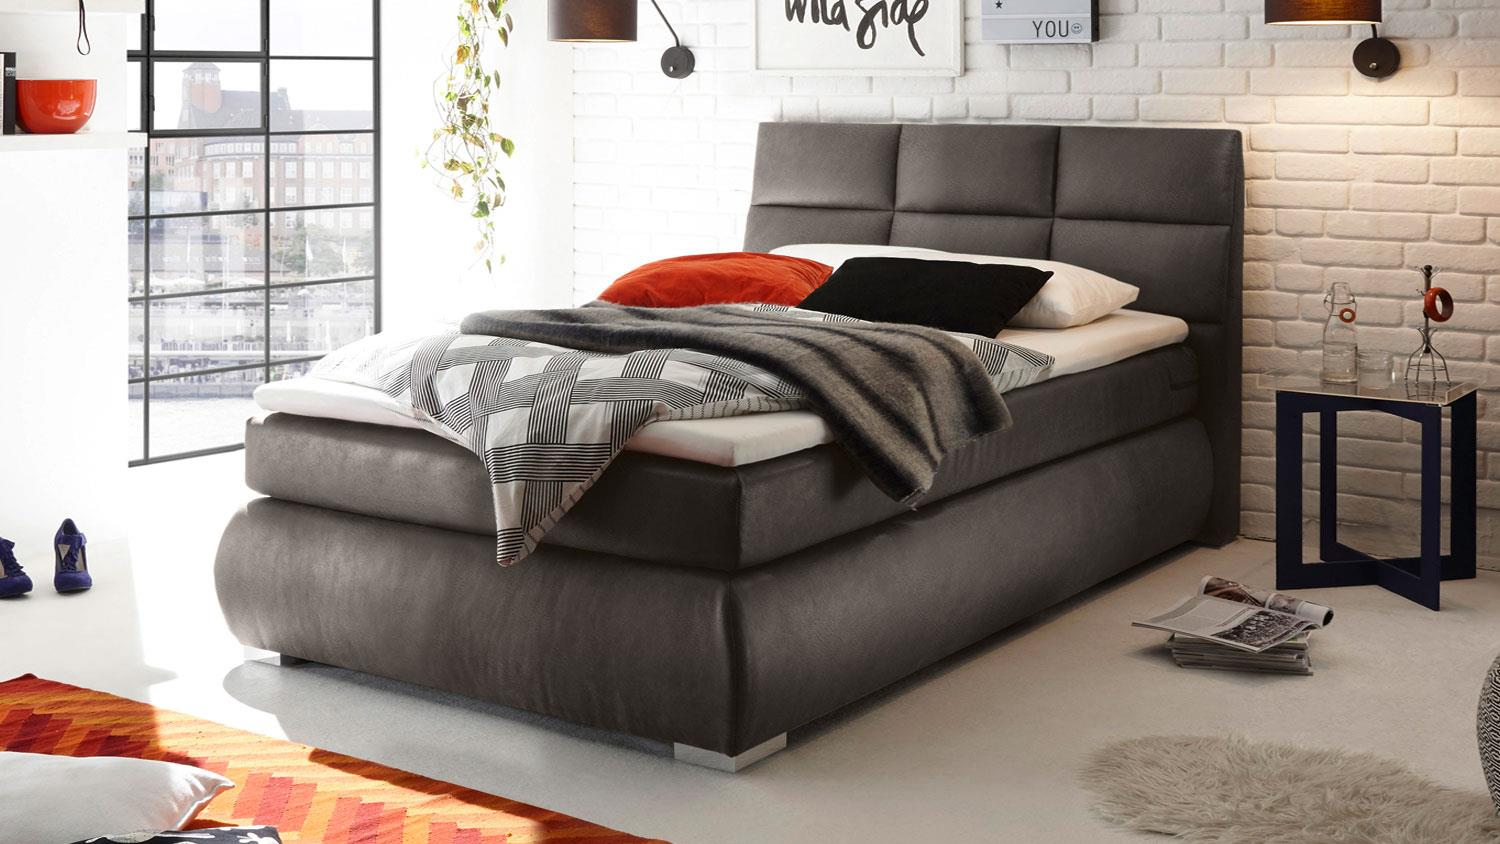 boxspringbett kosali 2 einzelbett bett grau 140x200 cm. Black Bedroom Furniture Sets. Home Design Ideas